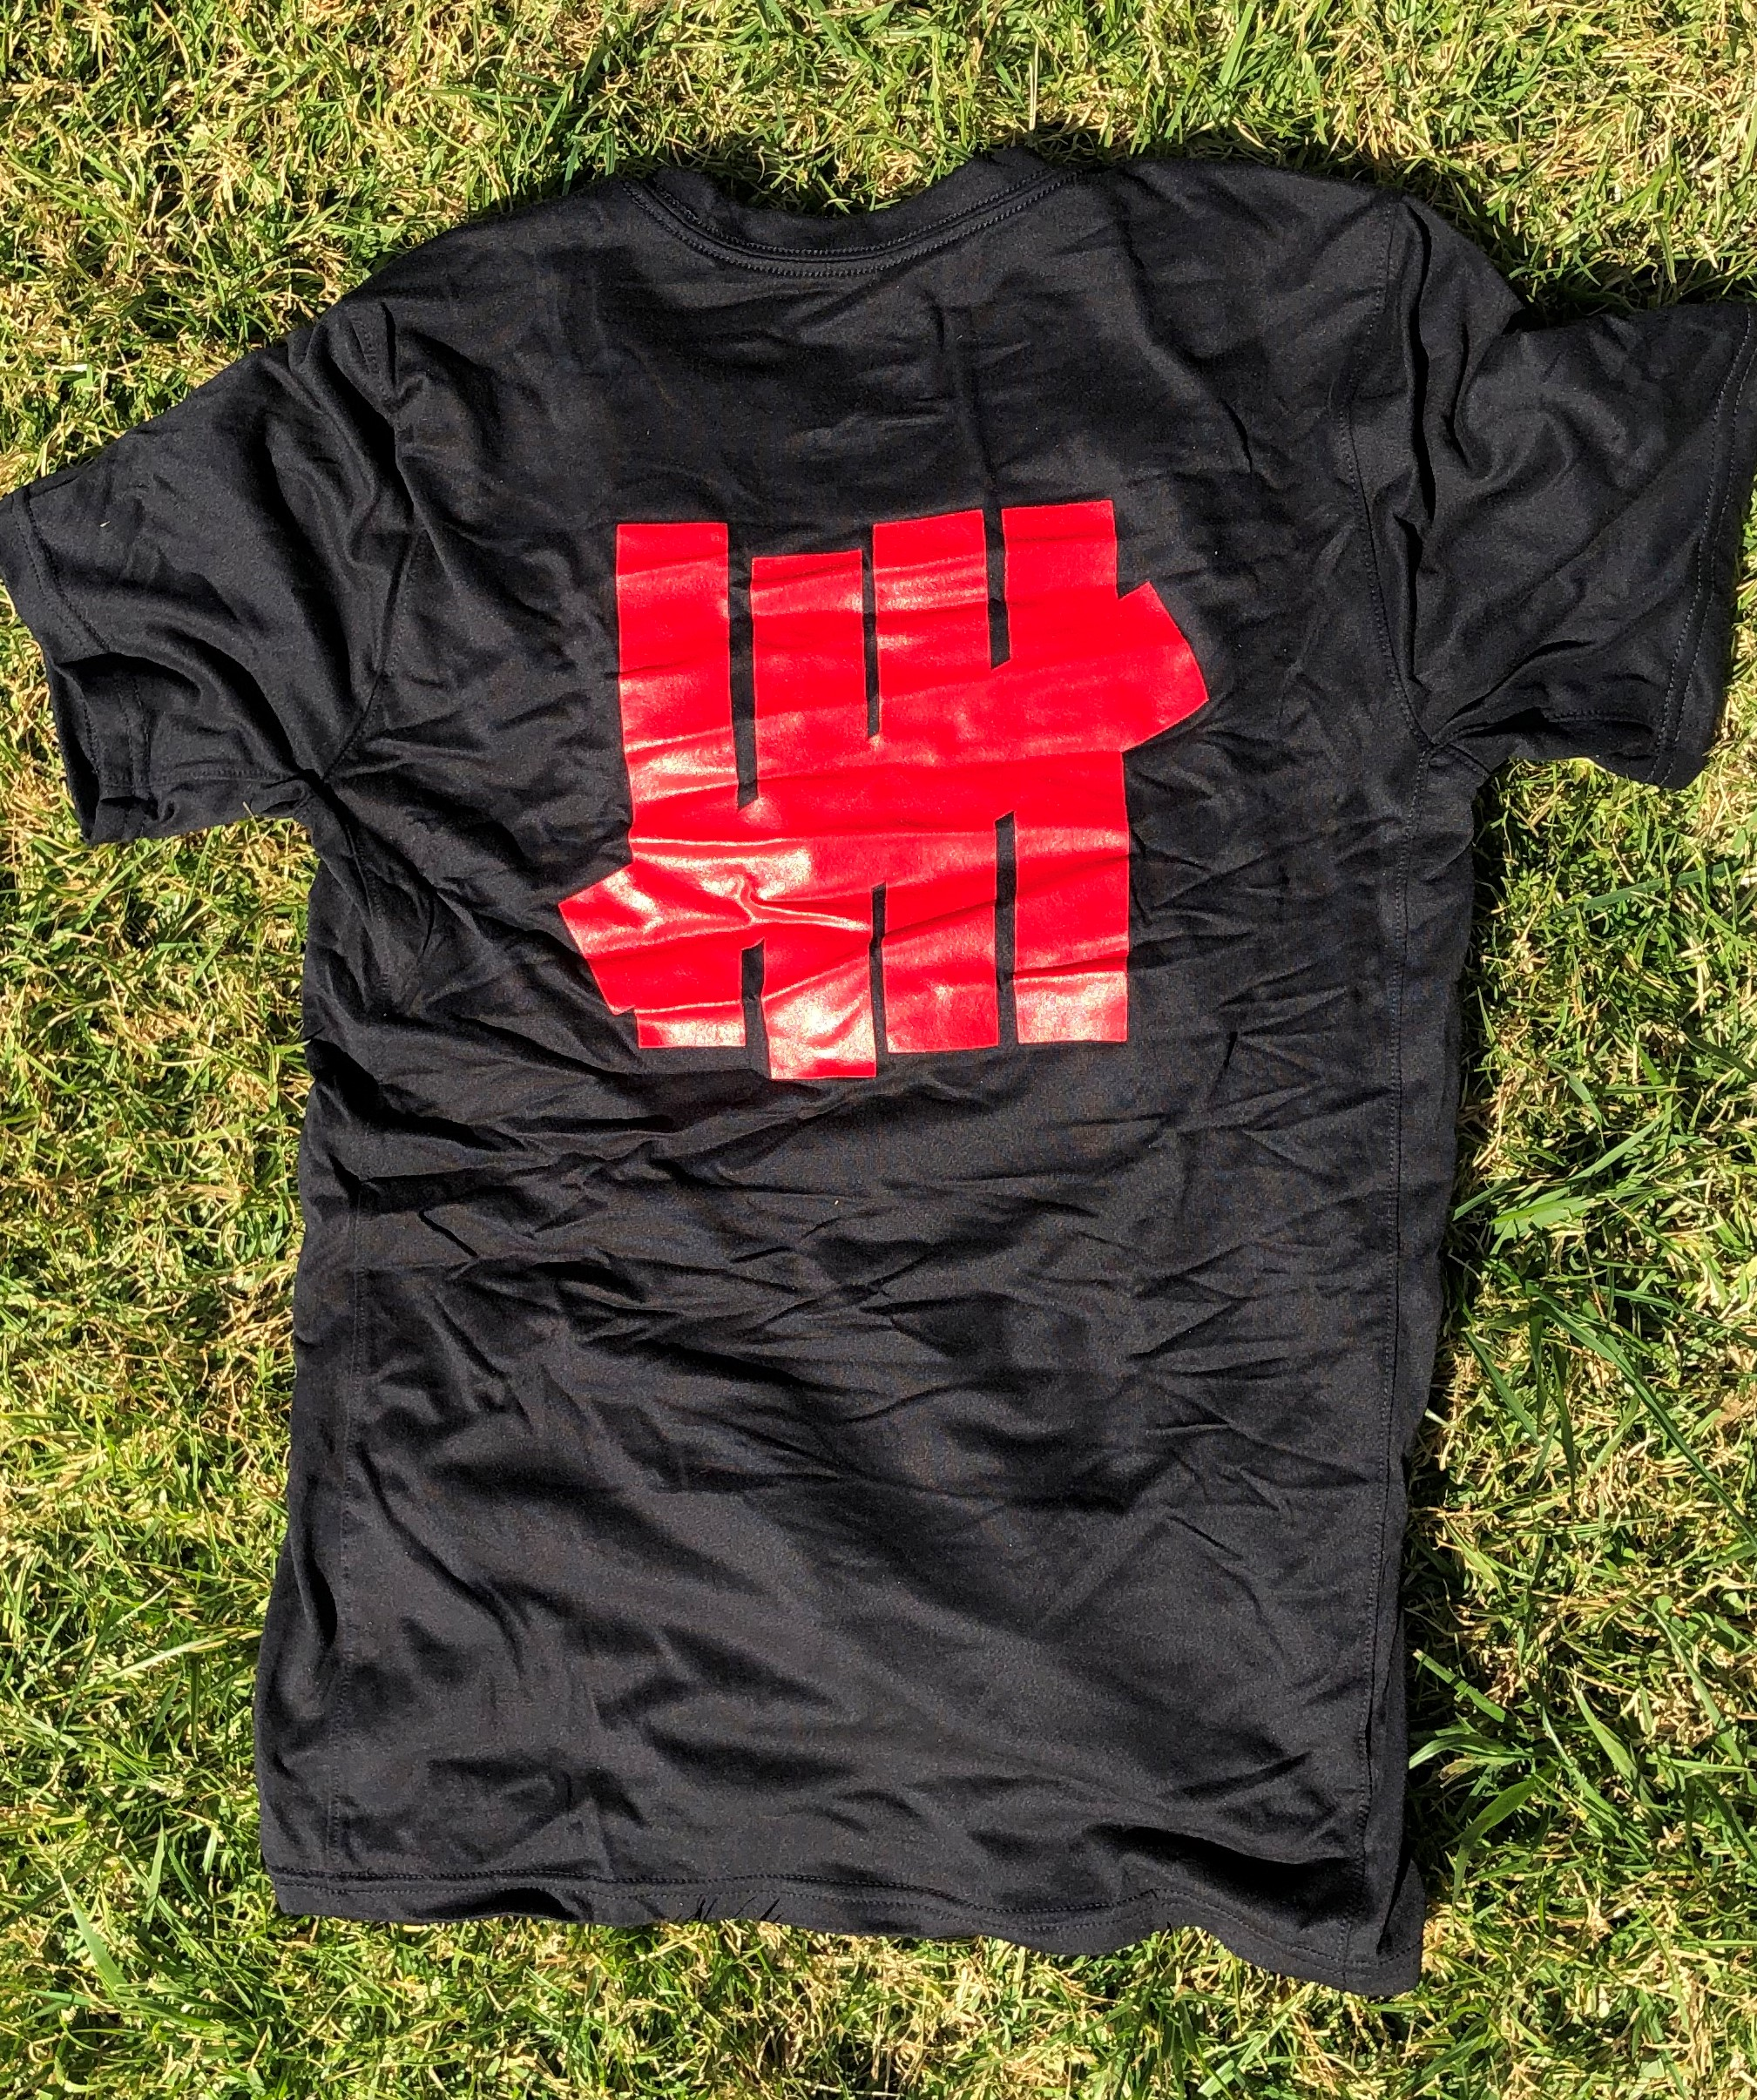 black T-shirt back with roman numeral in red